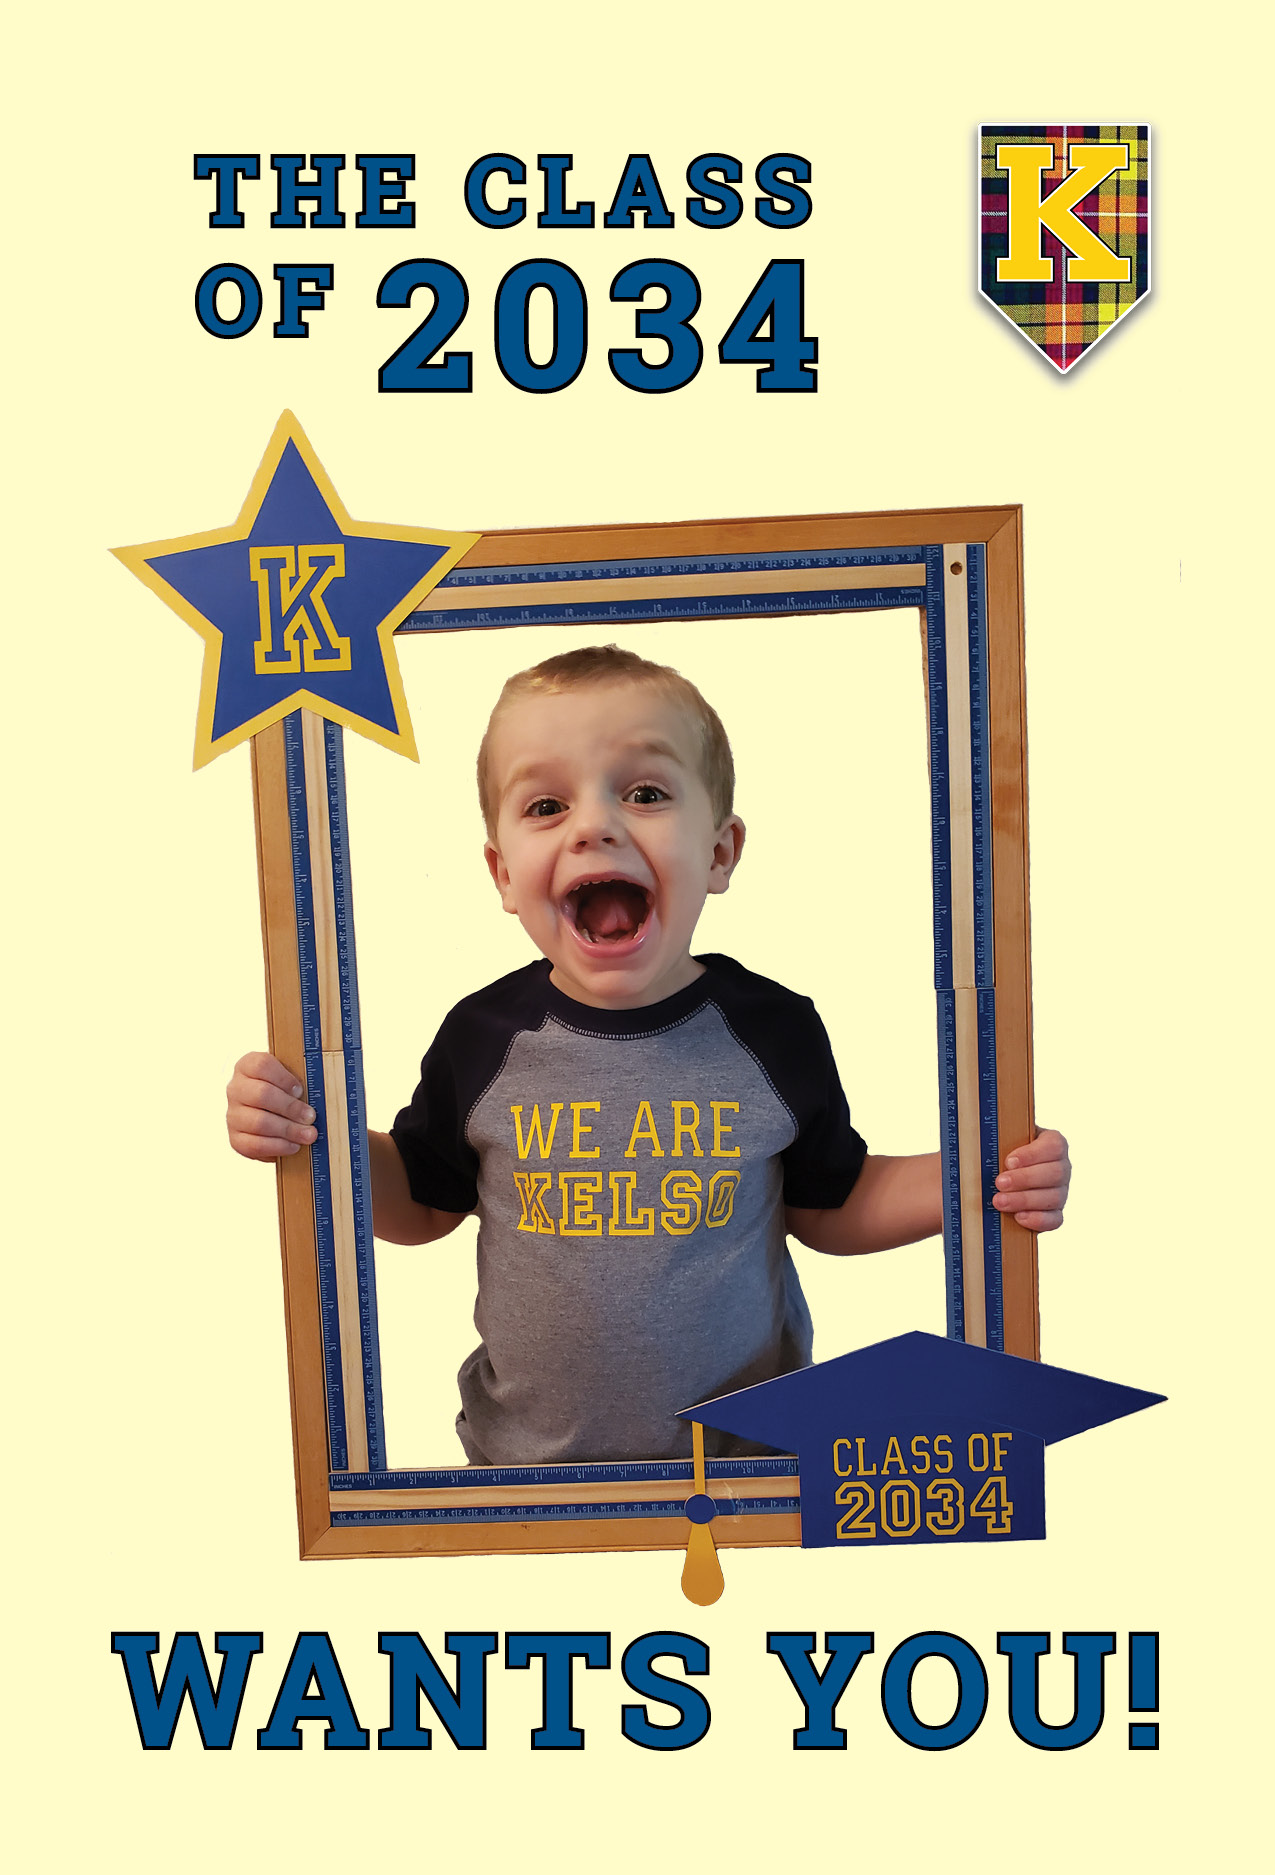 class of 2034 wants you